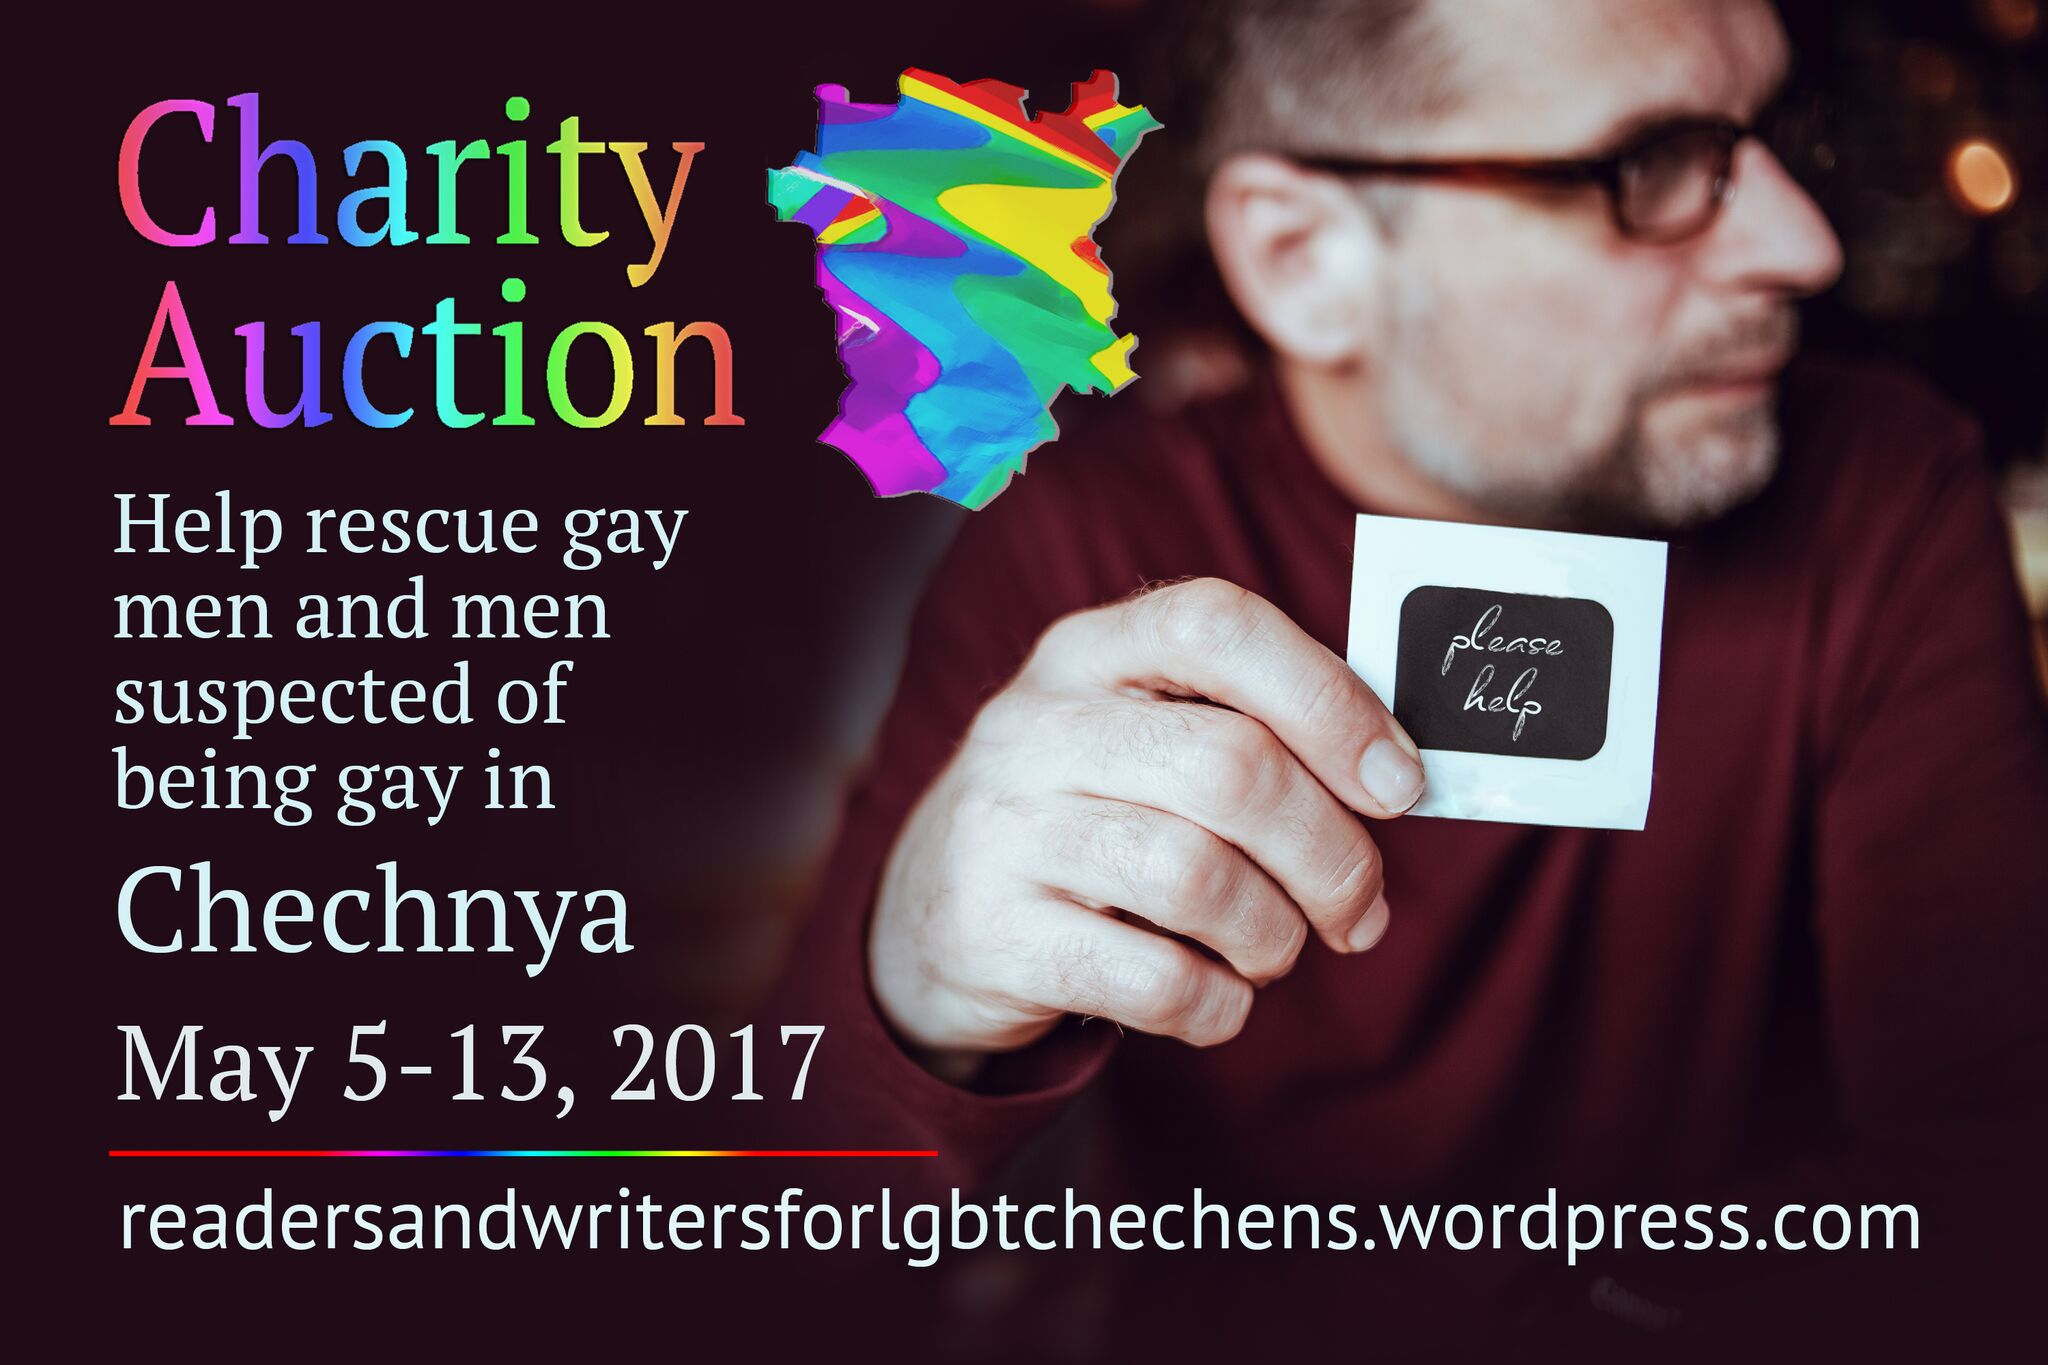 Charity auction to help rescue gay men and men suspected of being gay in Chechnya May 5 - May 13